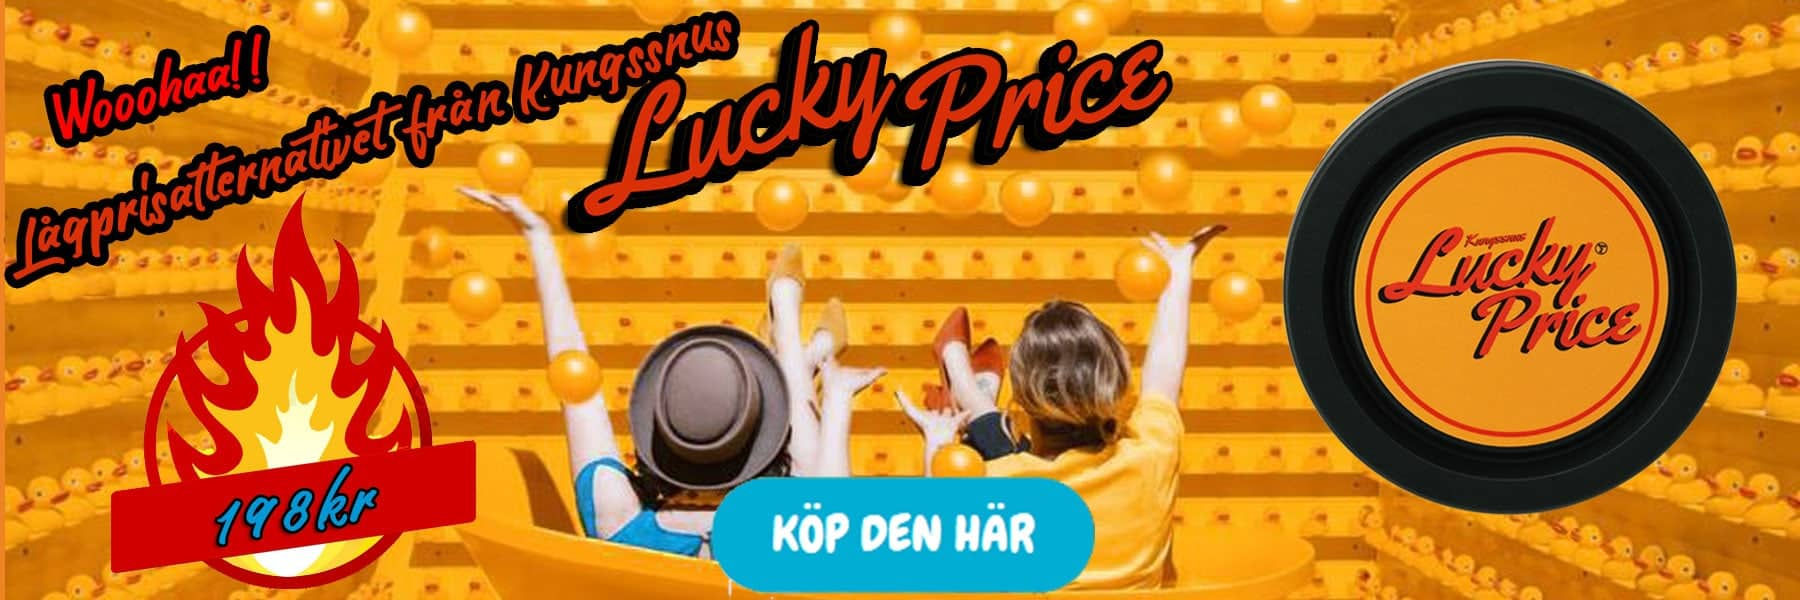 Lucky Price Snussatsen